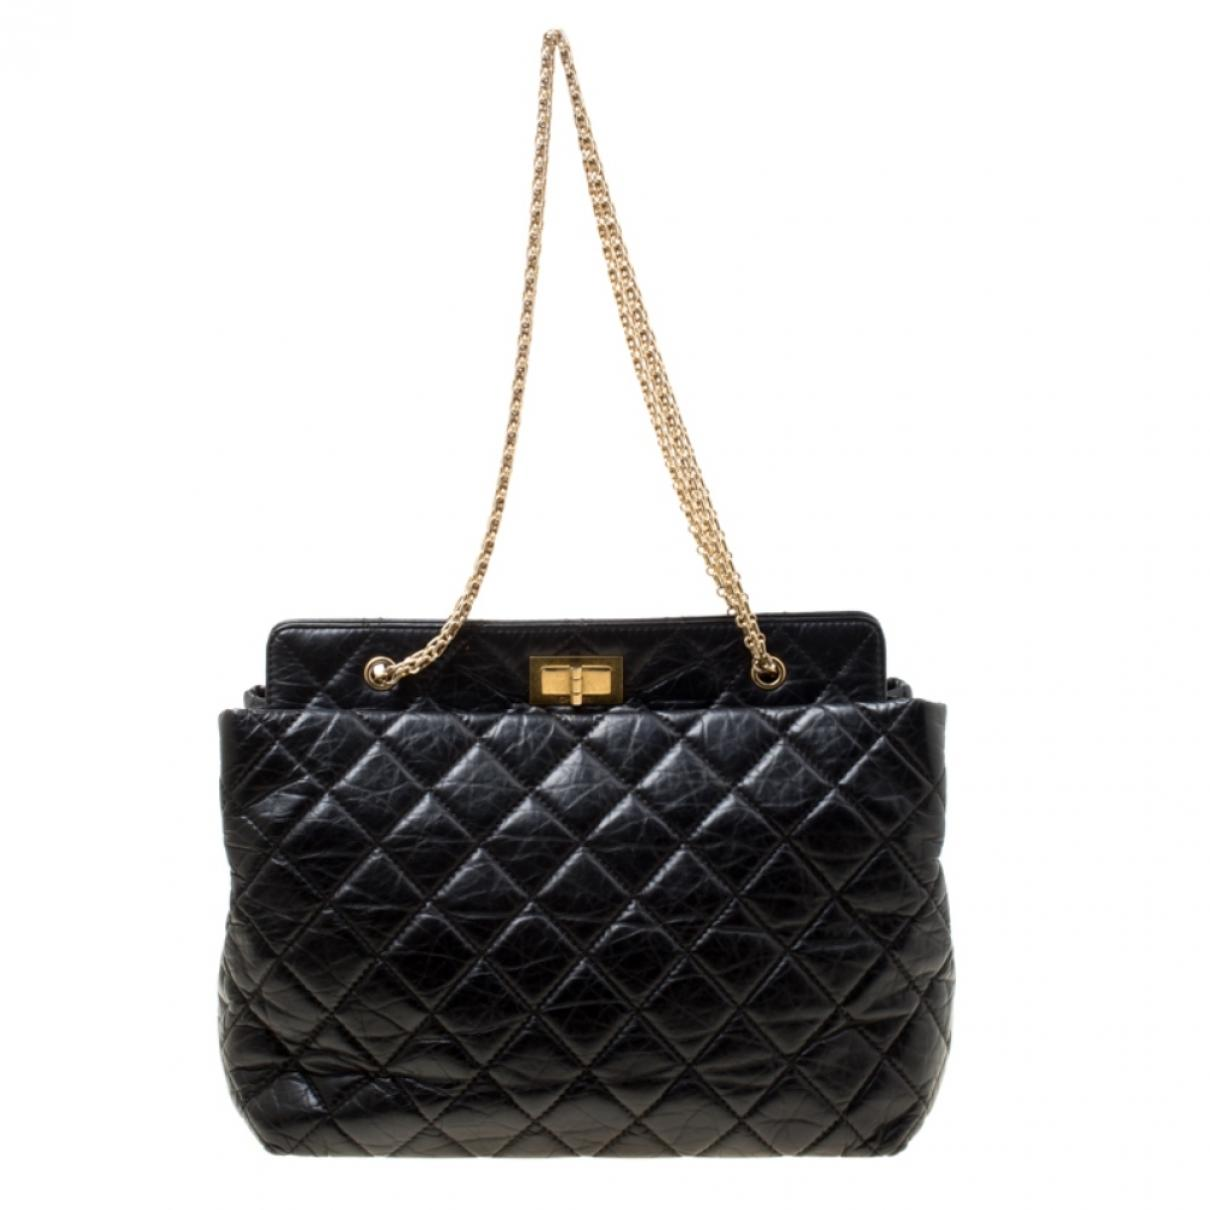 8d9b23192ccf80 Chanel. Women's Pre-owned Black Leather Handbags. $2,906 From Vestiaire  Collective